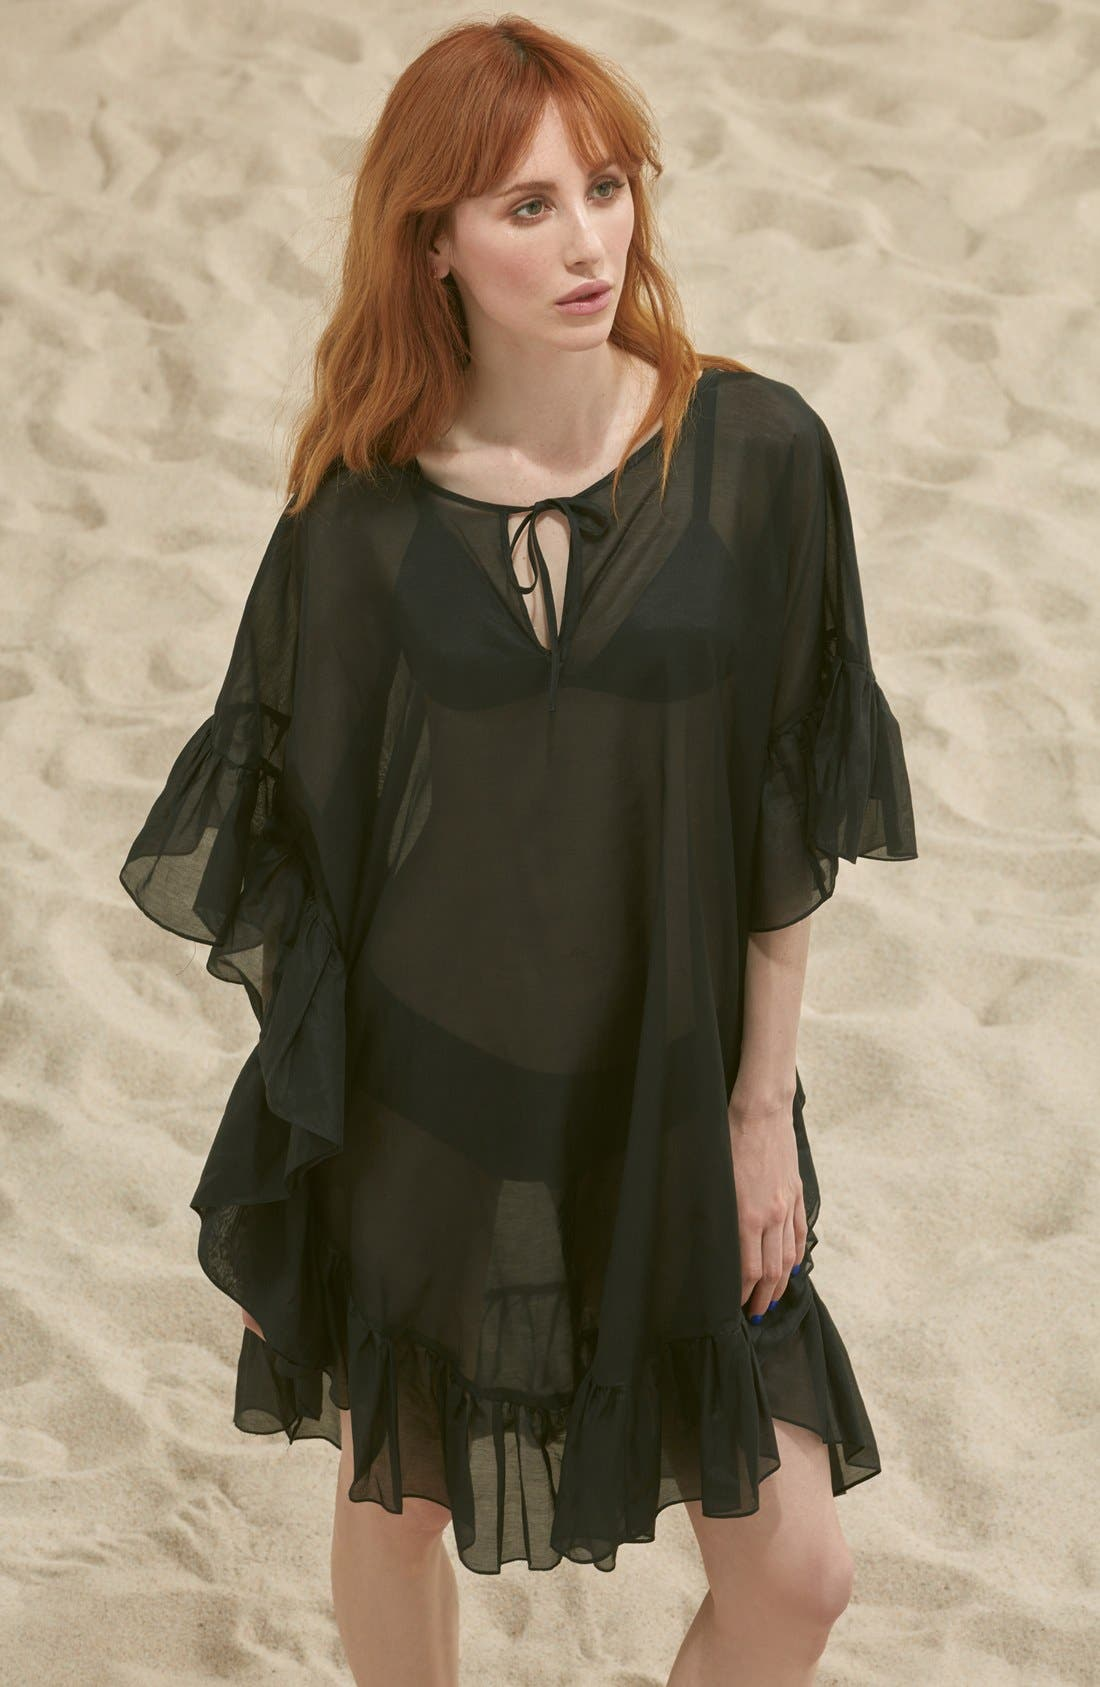 Alternate Image 1 Selected - Soler 'Yasmine' Frill Tie Cover-Up Caftan